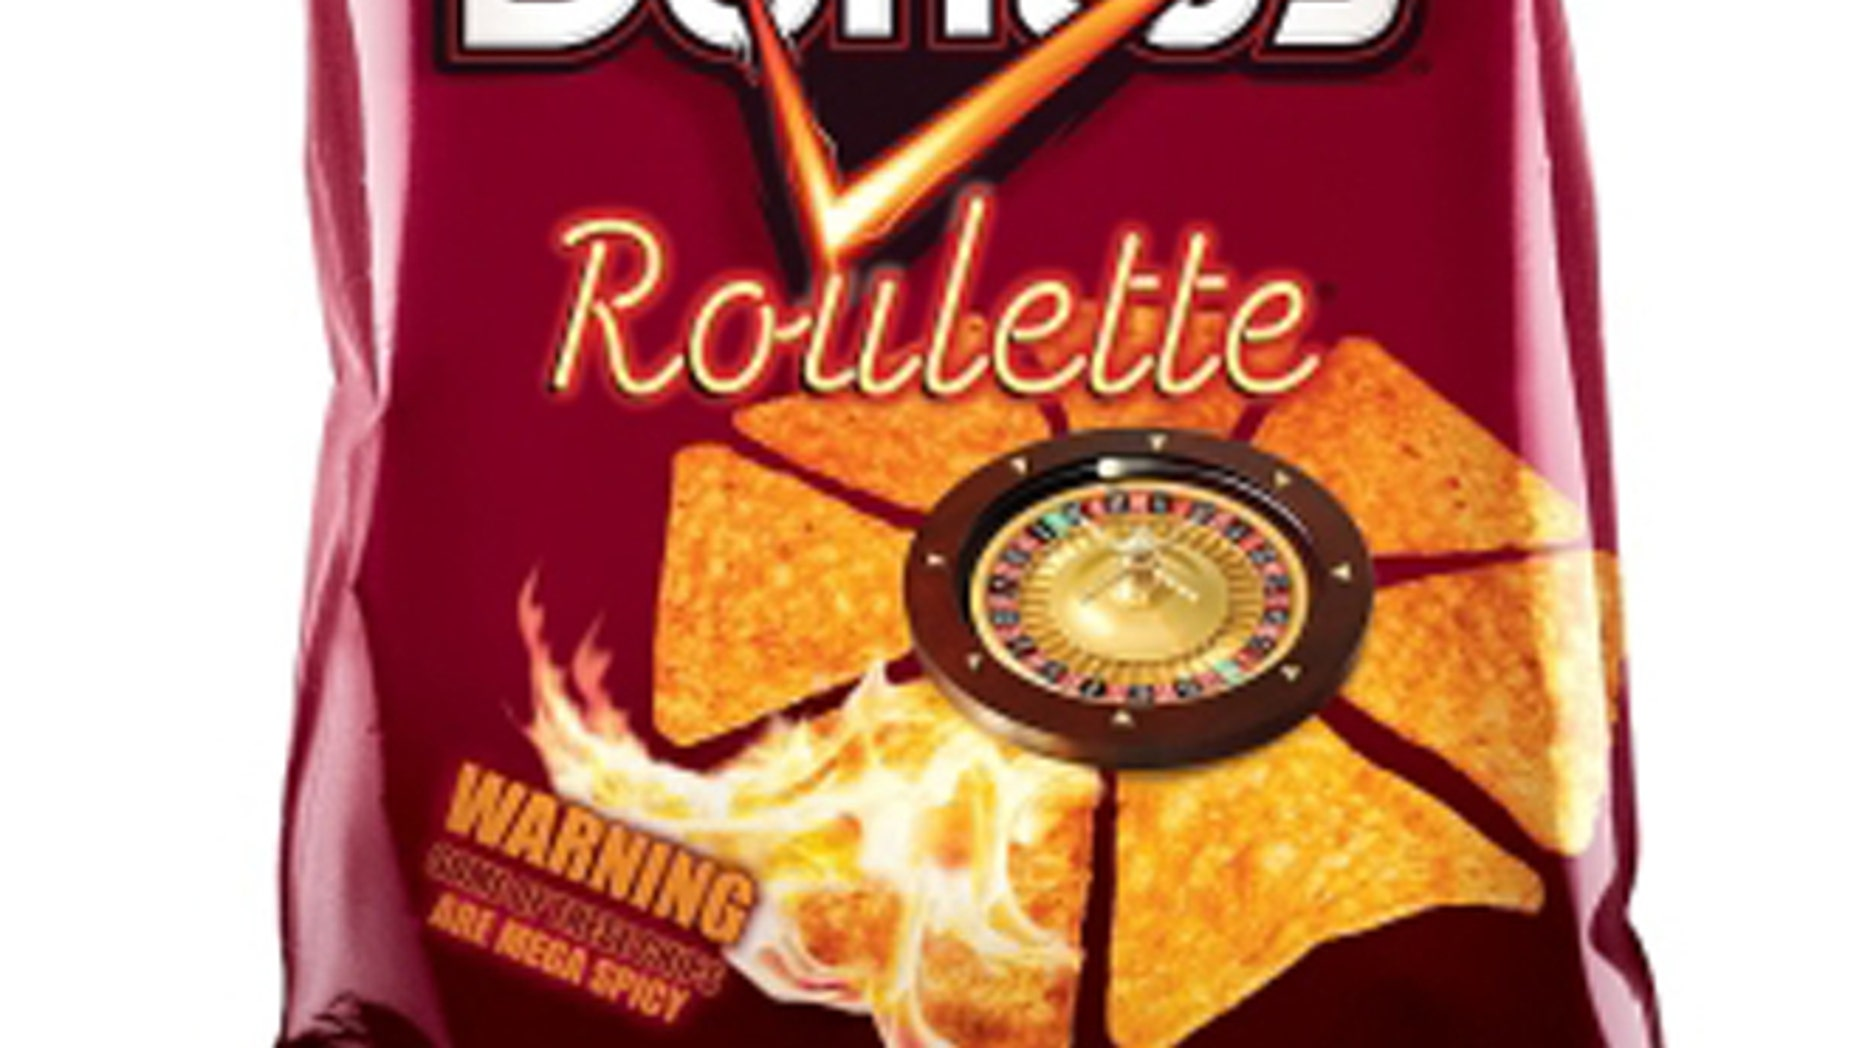 One in six Doritos Roulette chips is 10 times hotter than a jalapeno pepper.